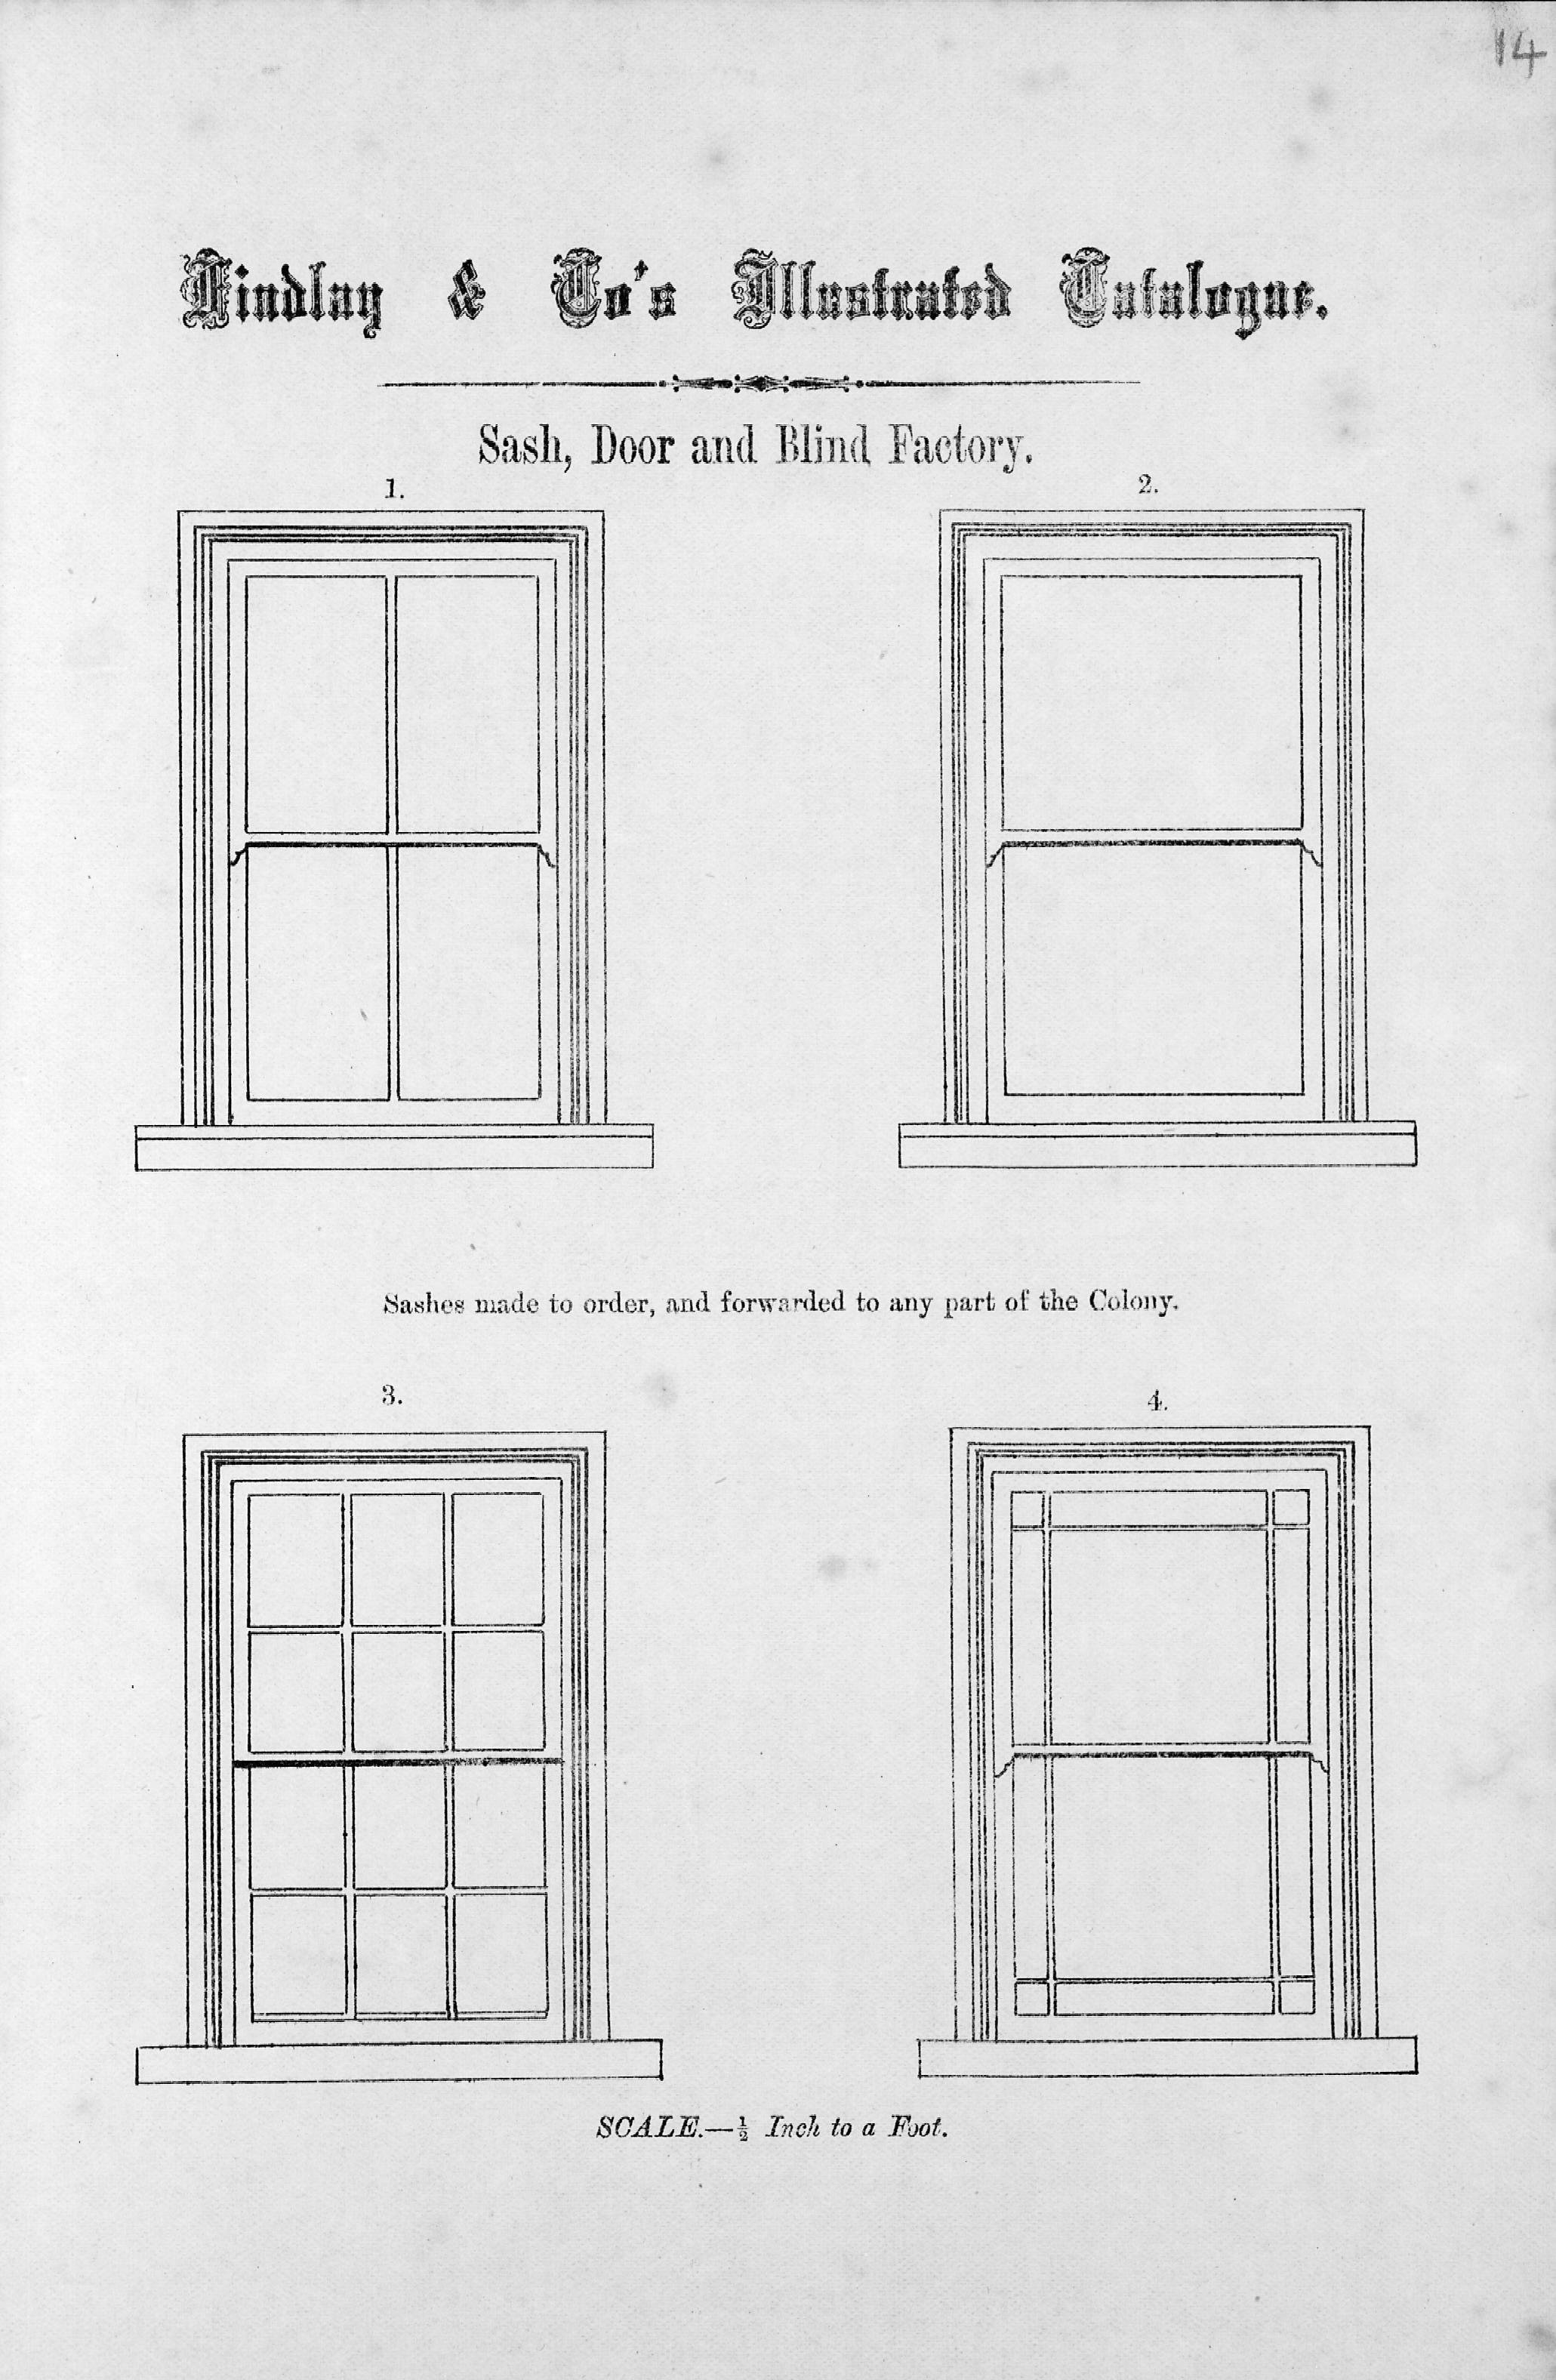 FileFindlay and Co. -Findlay and Co\u0027s illustrated catalogue. Sash door and blind factory. Sashes made to order and forwarded to any part of the colony.  sc 1 st  Wikimedia Commons & File:Findlay and Co. -Findlay and Co\u0027s illustrated catalogue. Sash ...